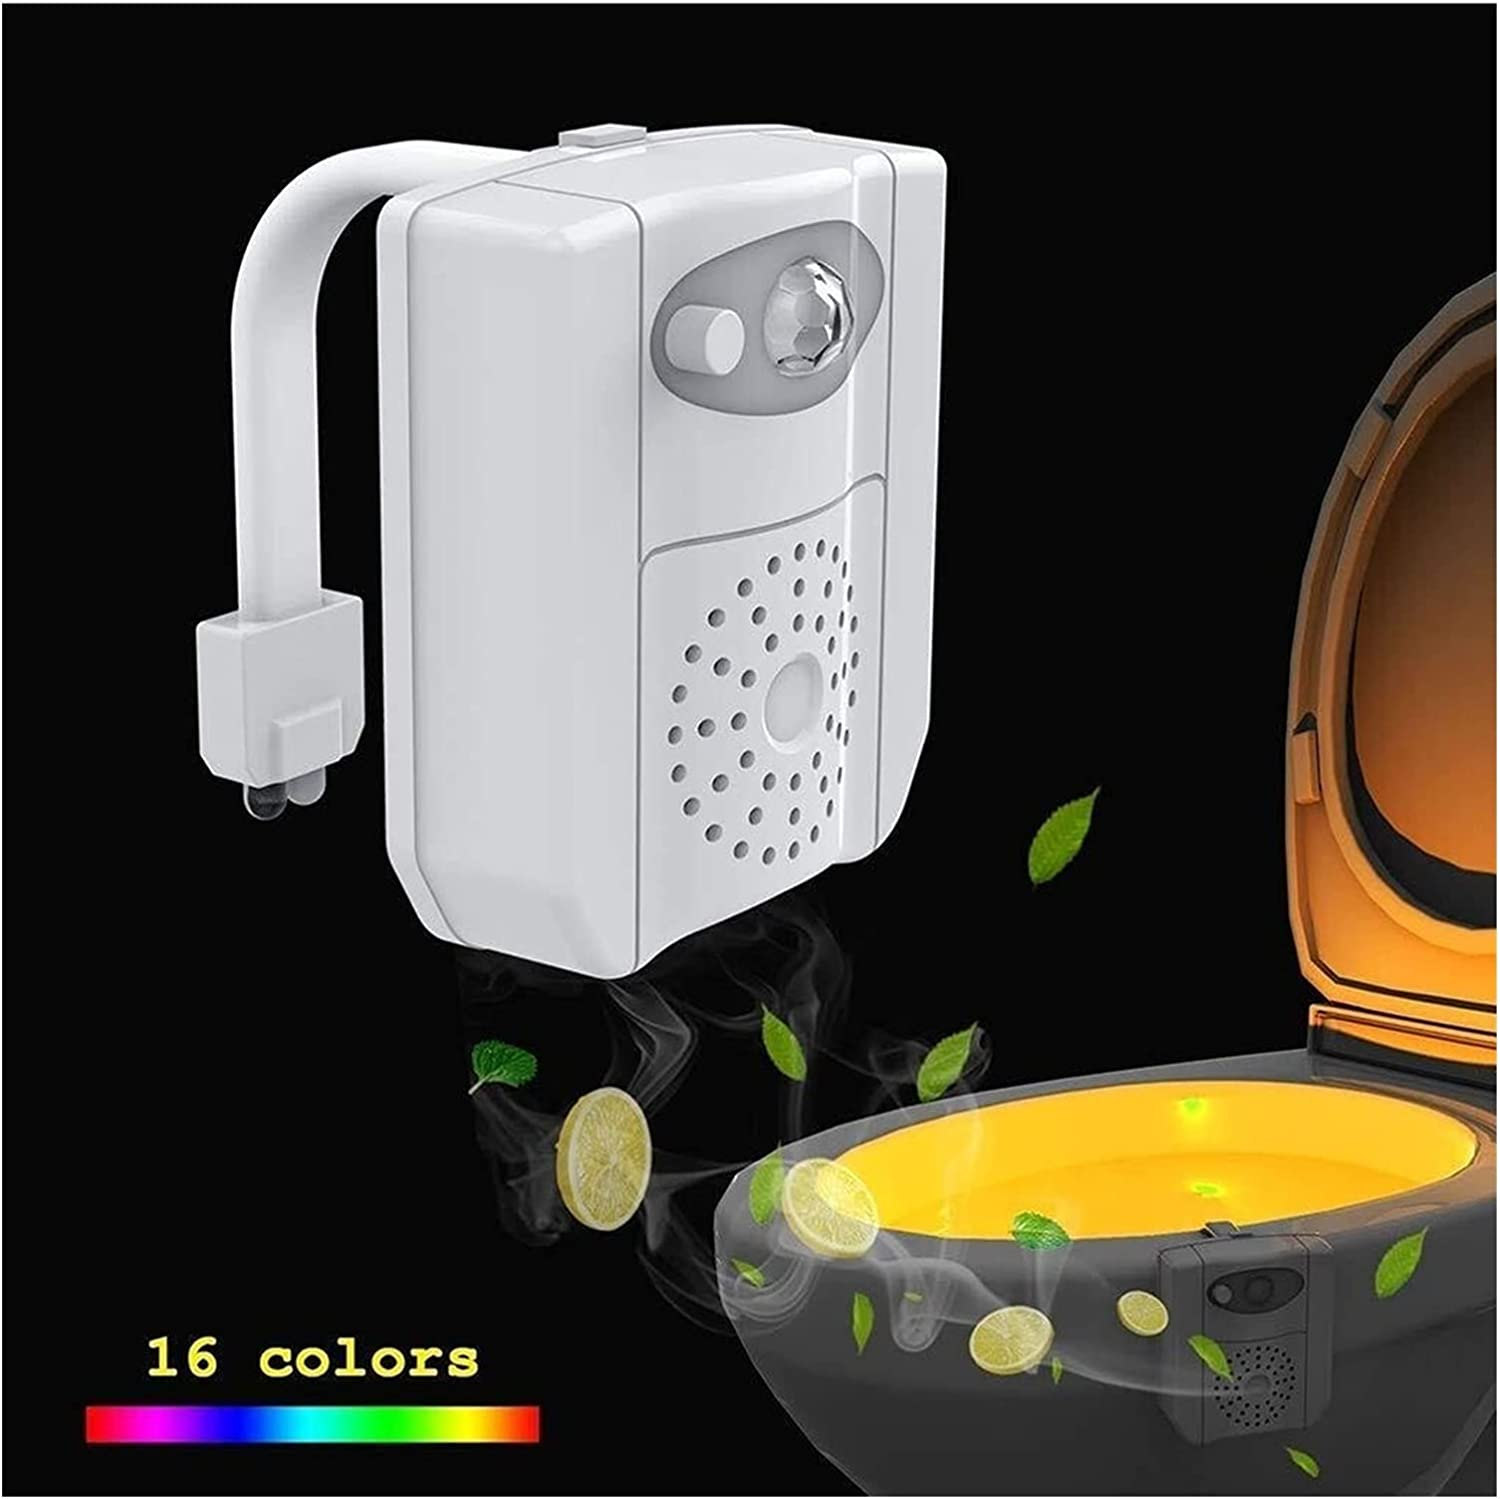 BXBX Led Toilet Night Cheap sale Light,16-Colors Sensor Motion with Directly managed store Creat